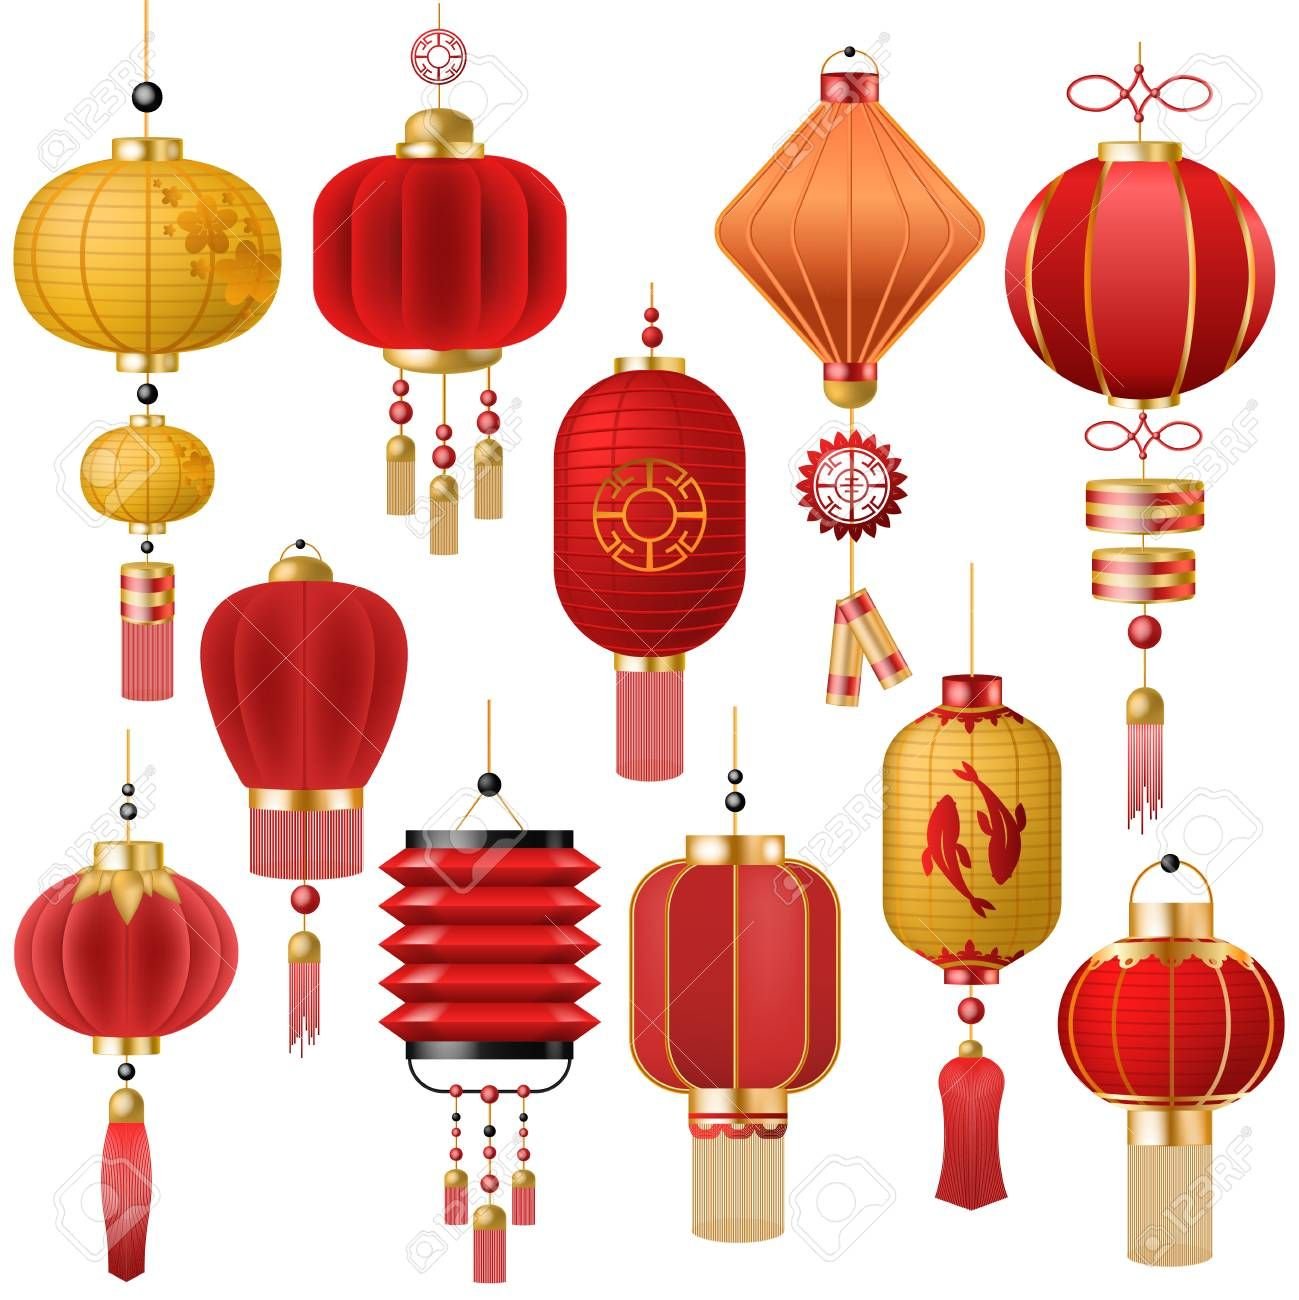 Chinese Lantern Vector Traditional Red Lantern Light And Oriental Decoration Of China Culture For Asian Celebr Chinese Lanterns Red Lantern Red Lantern Chinese